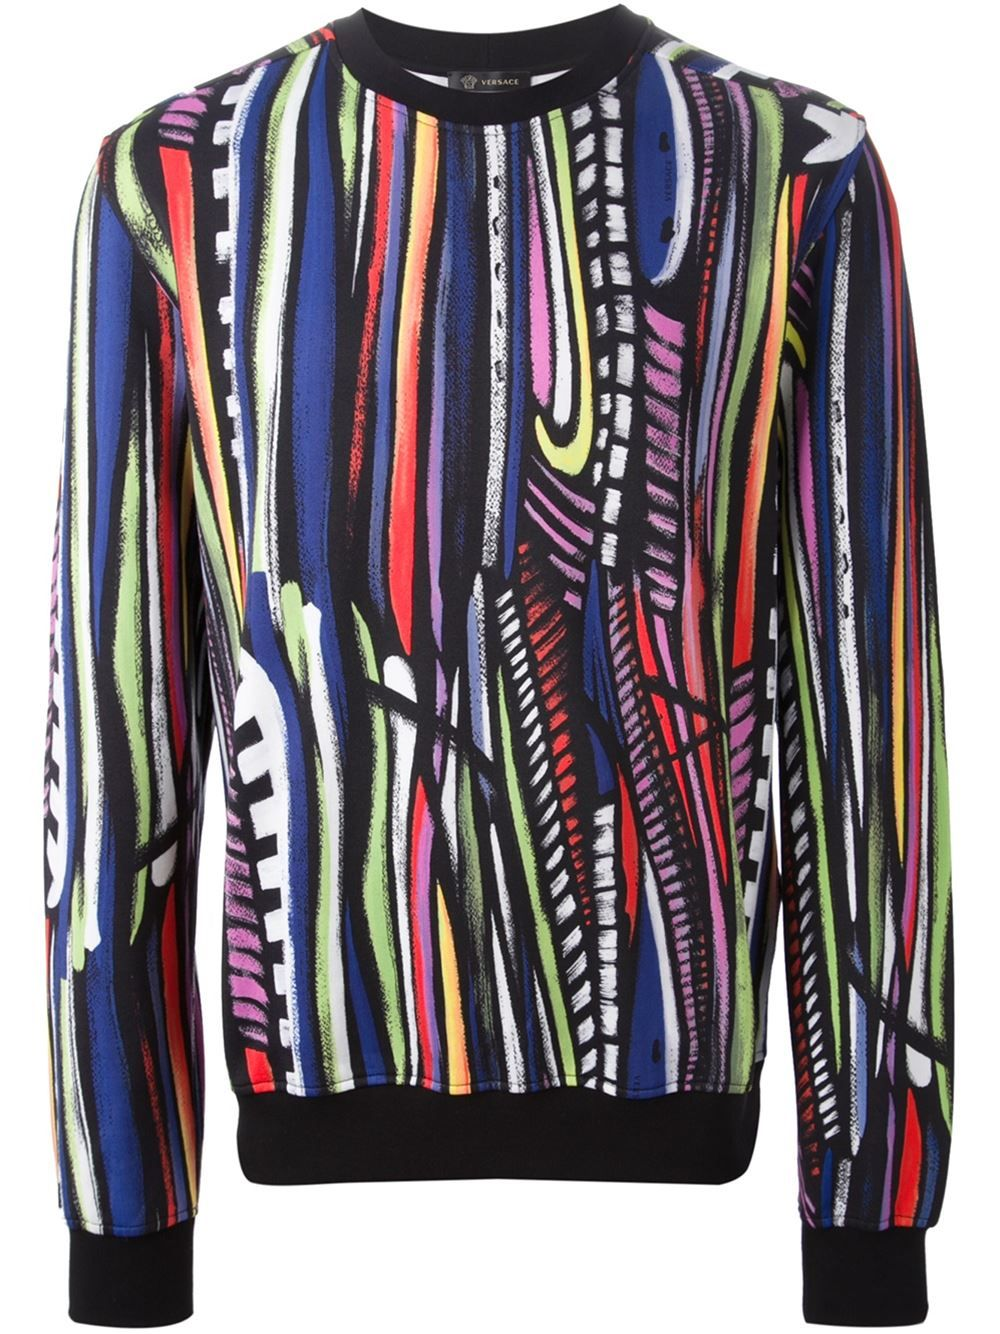 a670202a669e Versace Striped Sweatshirt - Verso - Farfetch.com